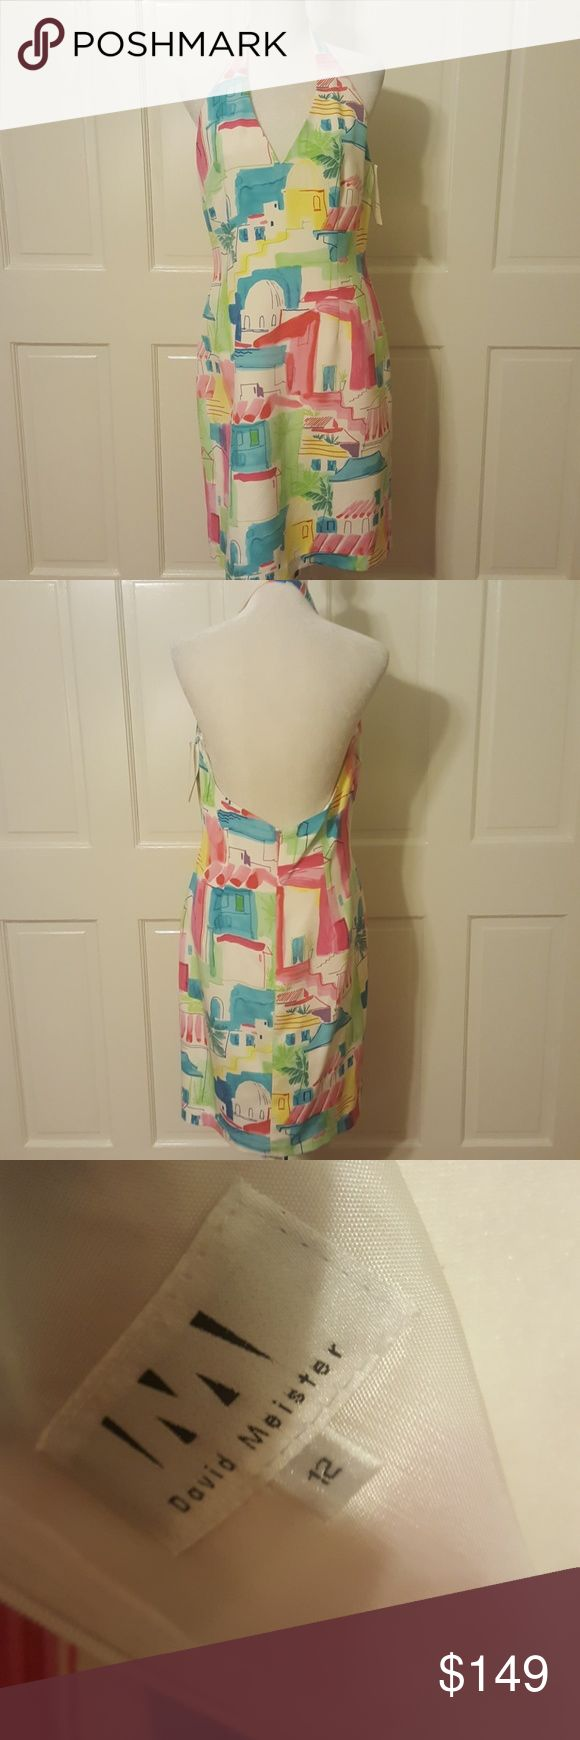 NWT Halter top dress Beautiful 100% silk halter top backless dress with bright colors.  Pink, blue, green, yellow and White.  Very fitted knee length.   Great for that special occasion or a night out. David Meister Dresses Backless